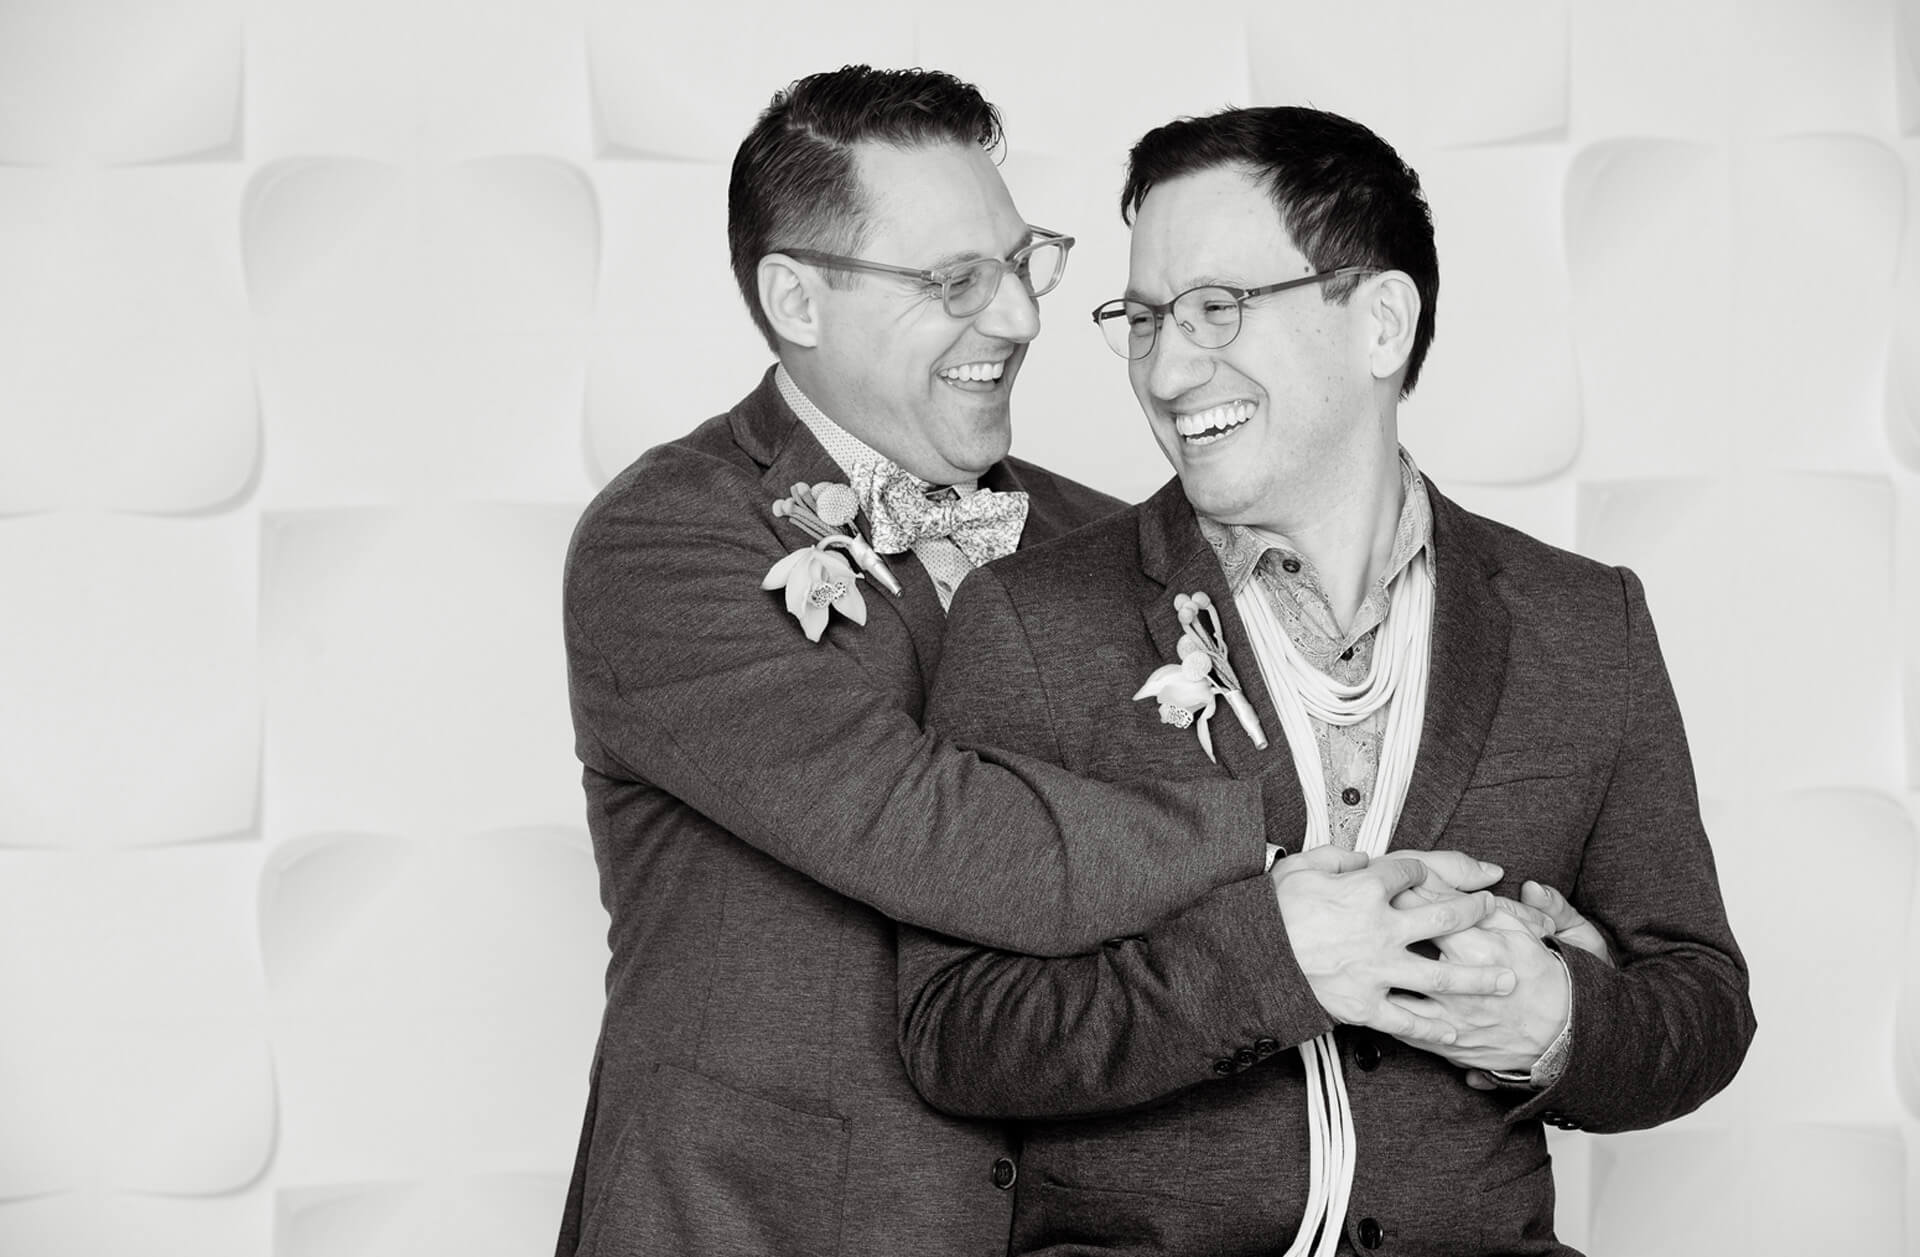 Wedding photojournalist Marci Curtis captures moments during her wedding photography like these two men hugging after their wedding ceremony at home in Pleasant Ridge, Michigan.